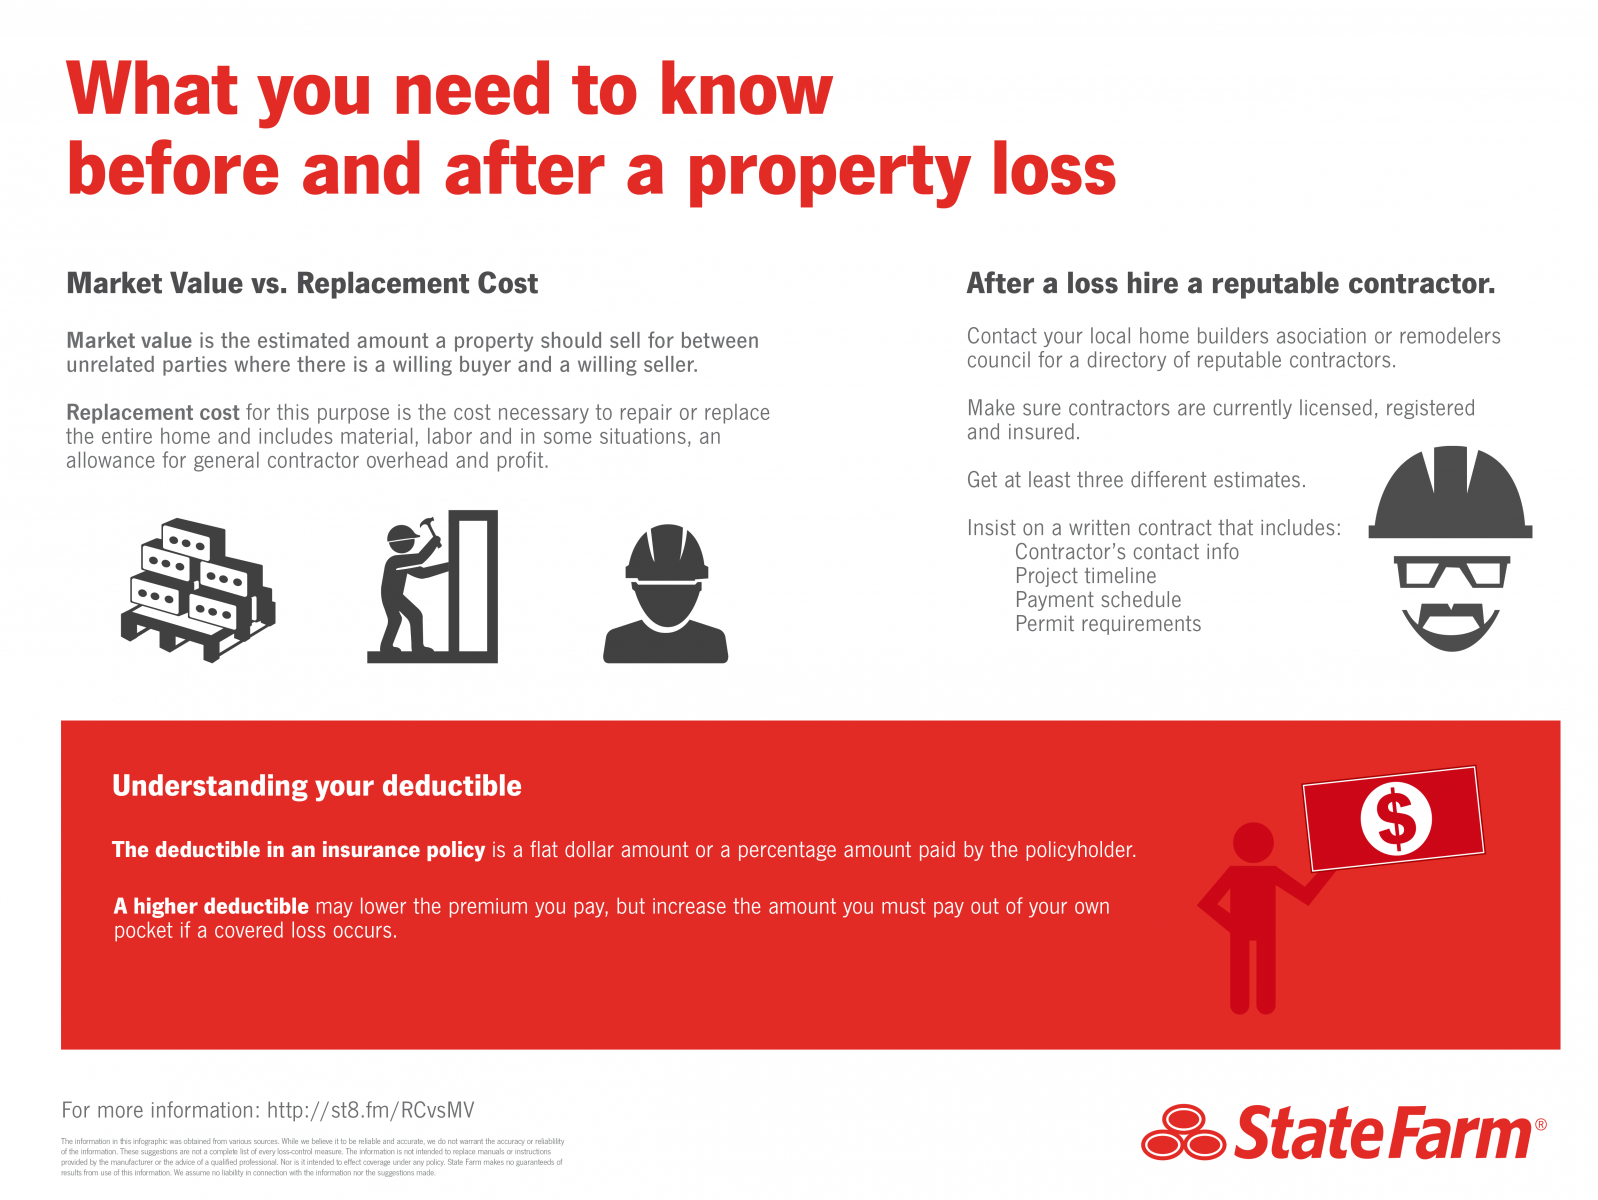 What To Know Before And After A Property Loss